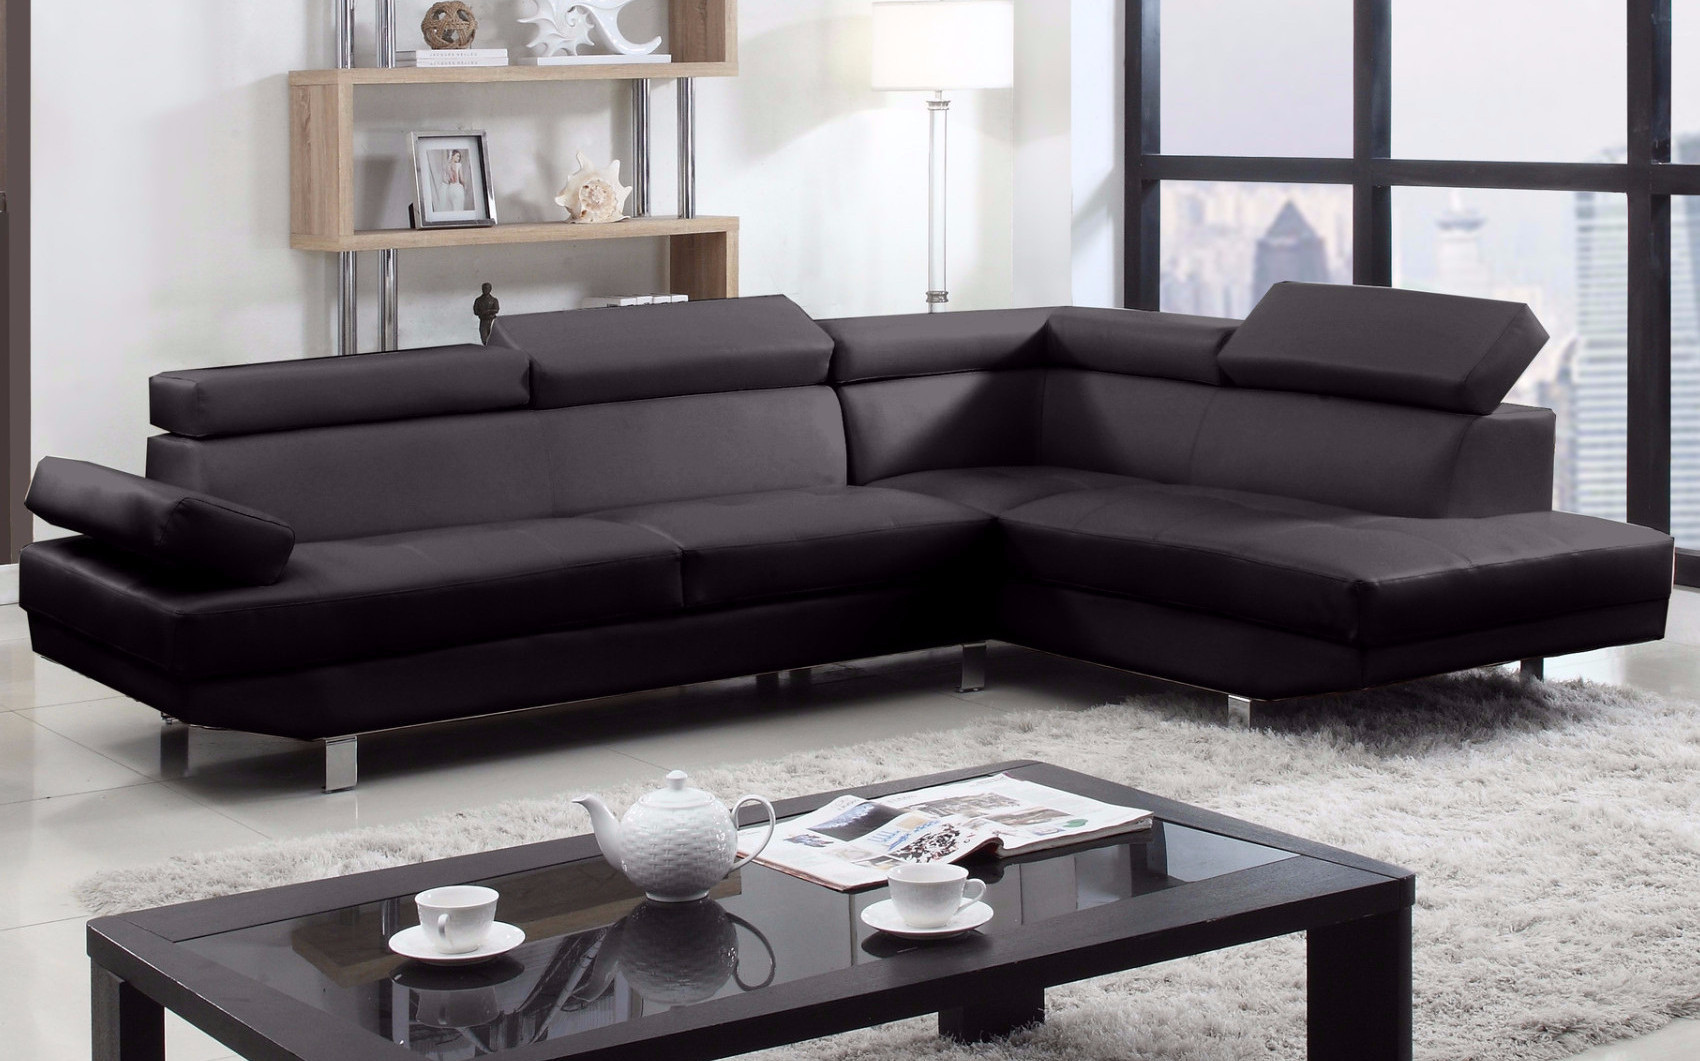 2 Piece Modern Bonded Leather Right Facing Chaise Sectional Sofa by